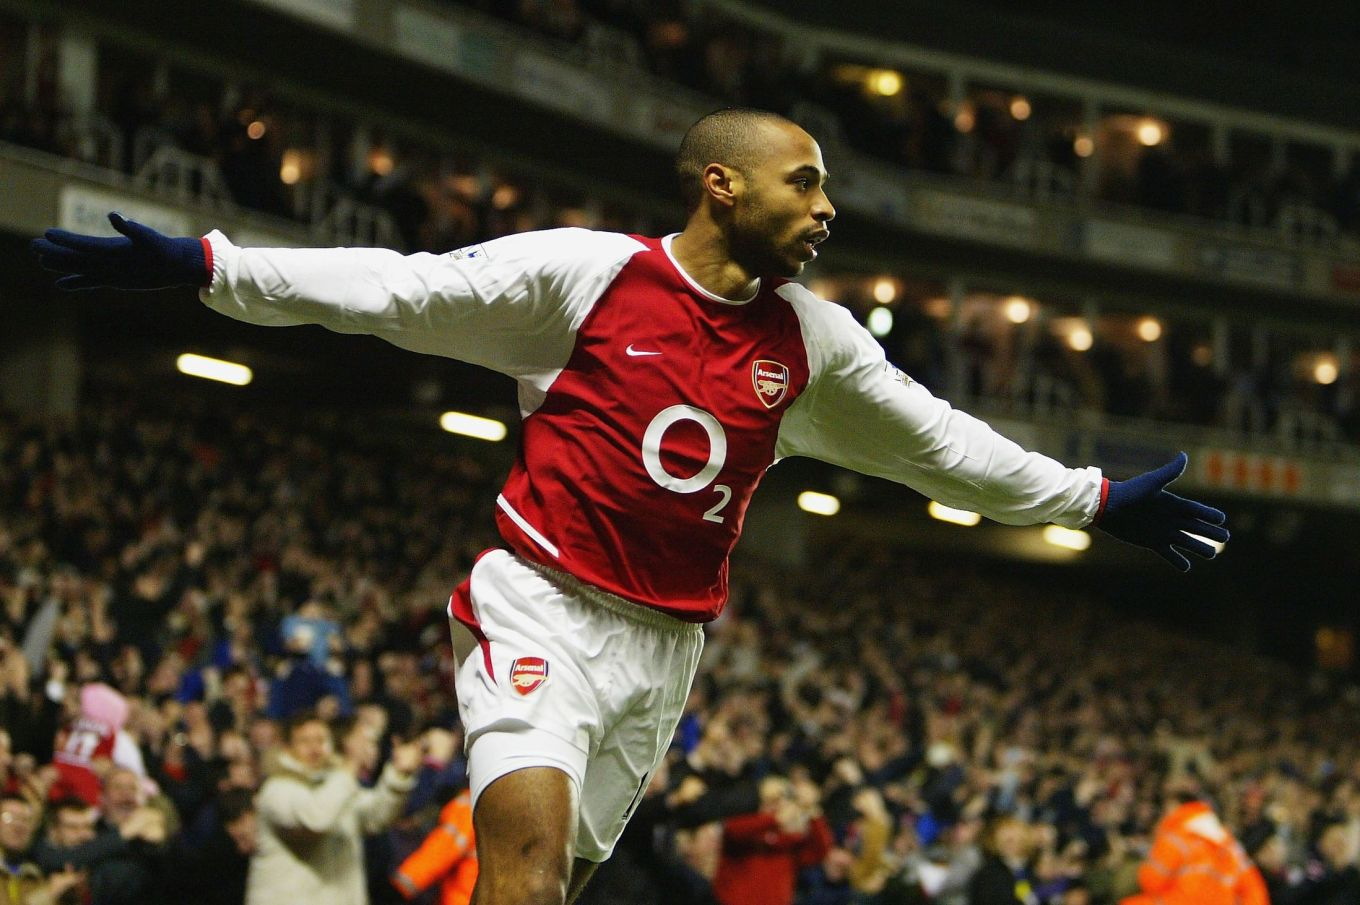 thierry-henry-scores-goal-premier-league-season-20032004-1418838111